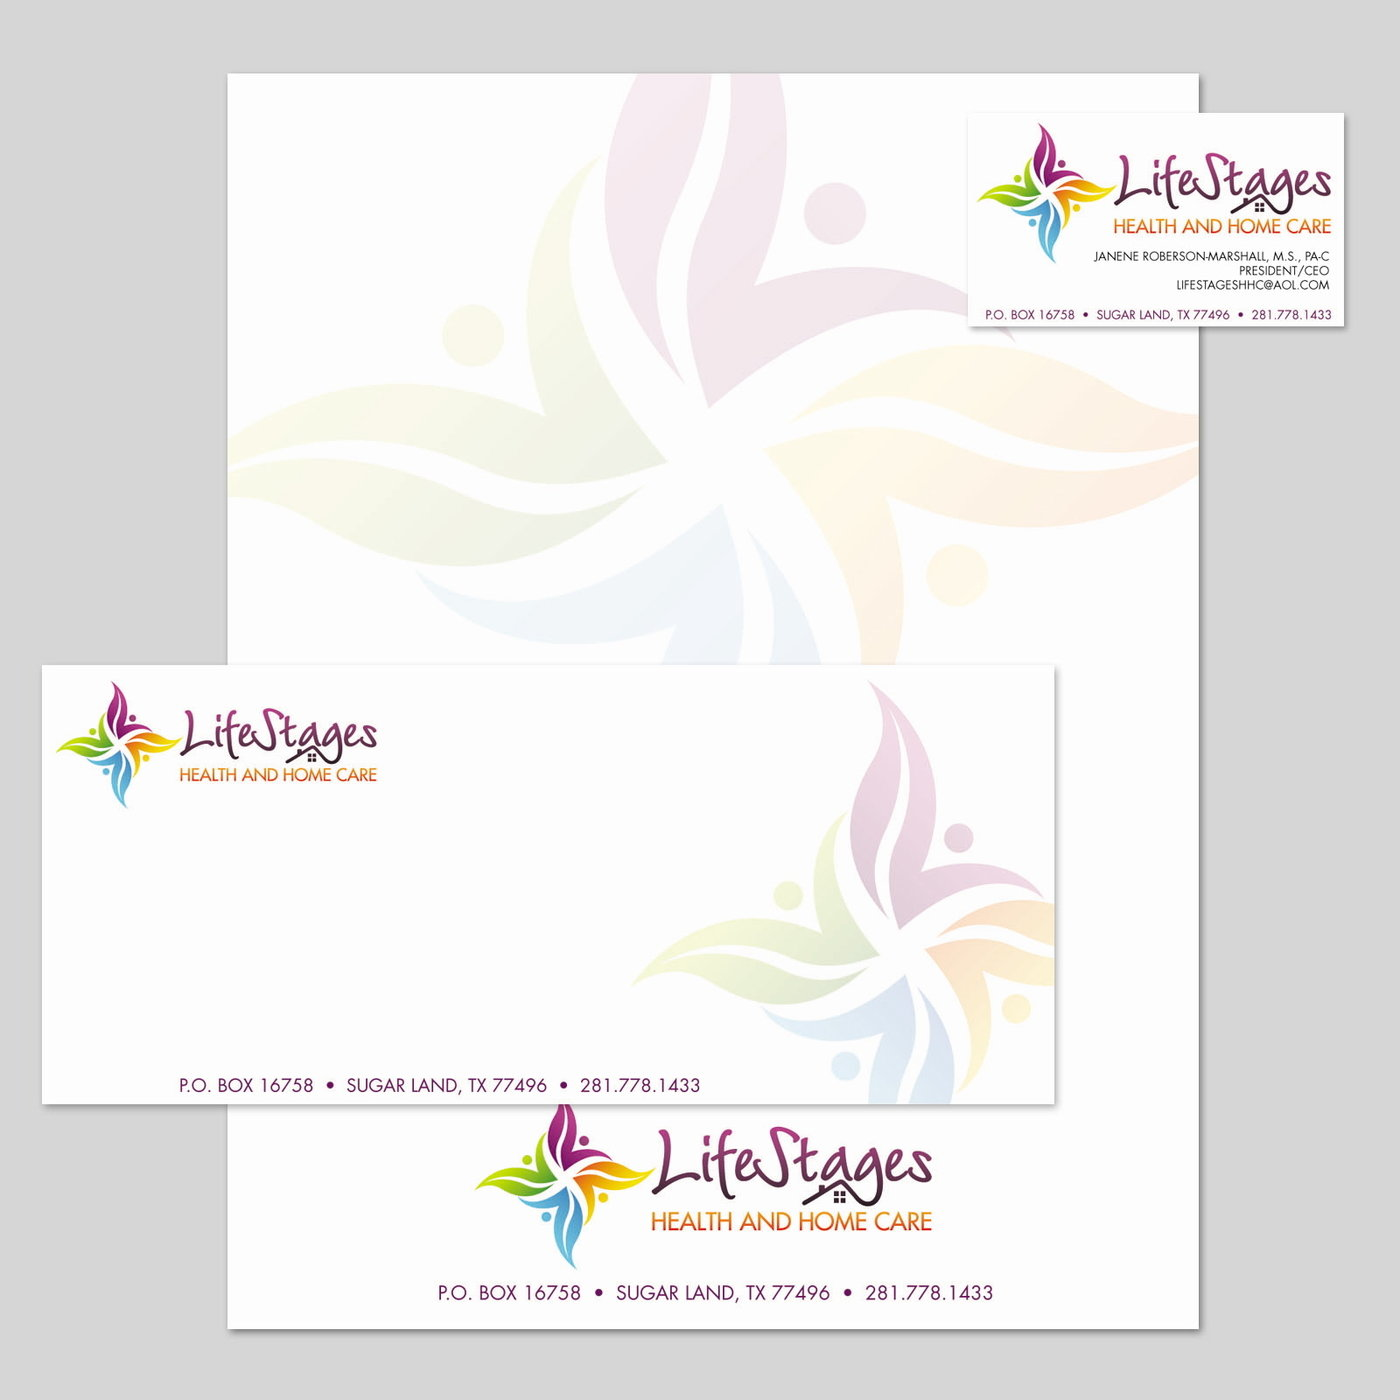 Business cards by jennifer bury at coroflot lifestyles stationery business card letterhead and envelope reheart Image collections